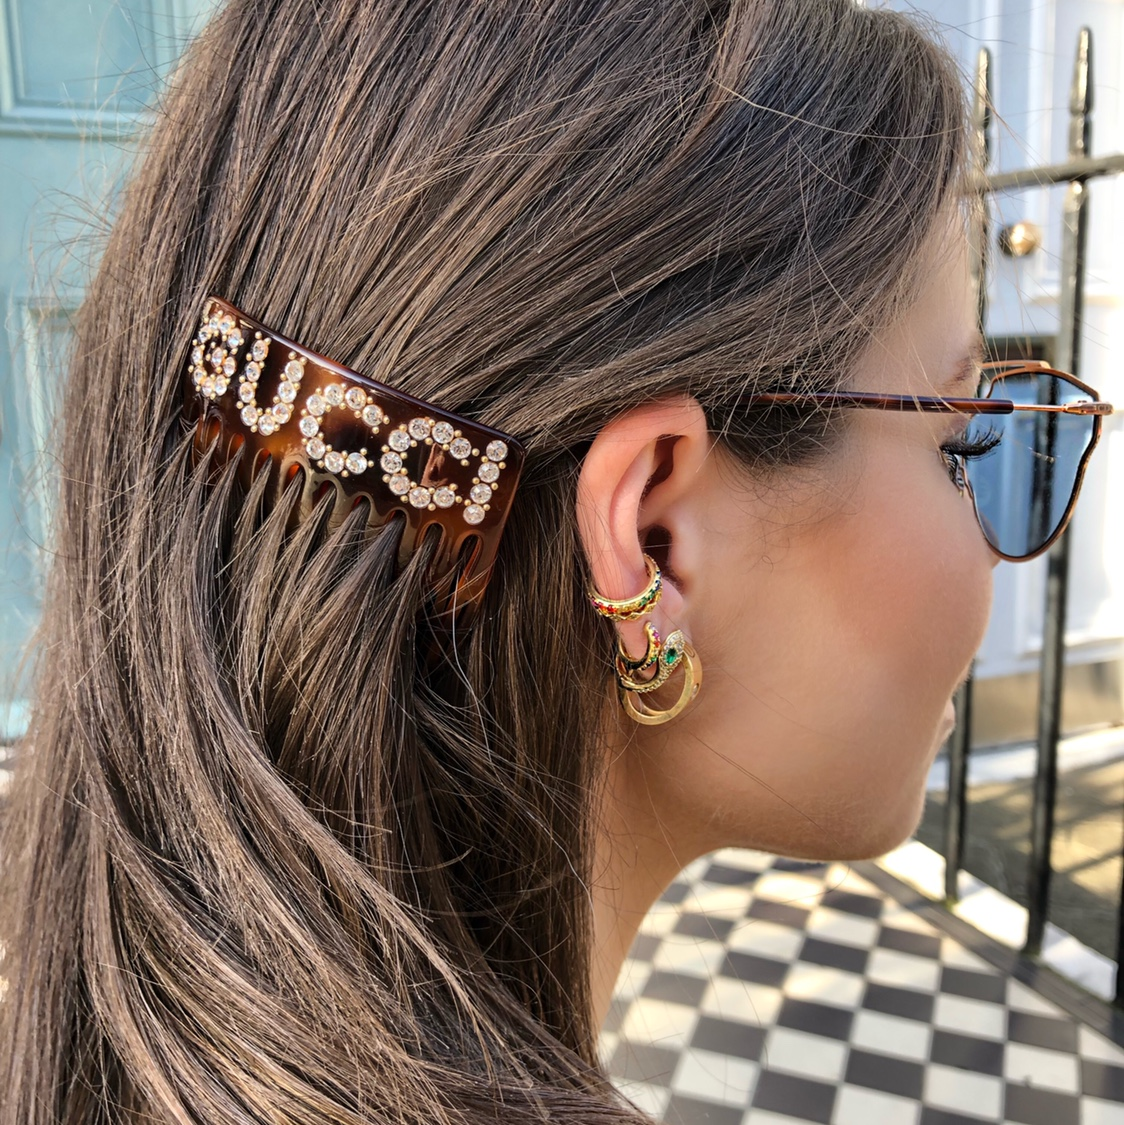 421457a5177 Sold out** limited #GUCCI crystal and resin hair... - Depop